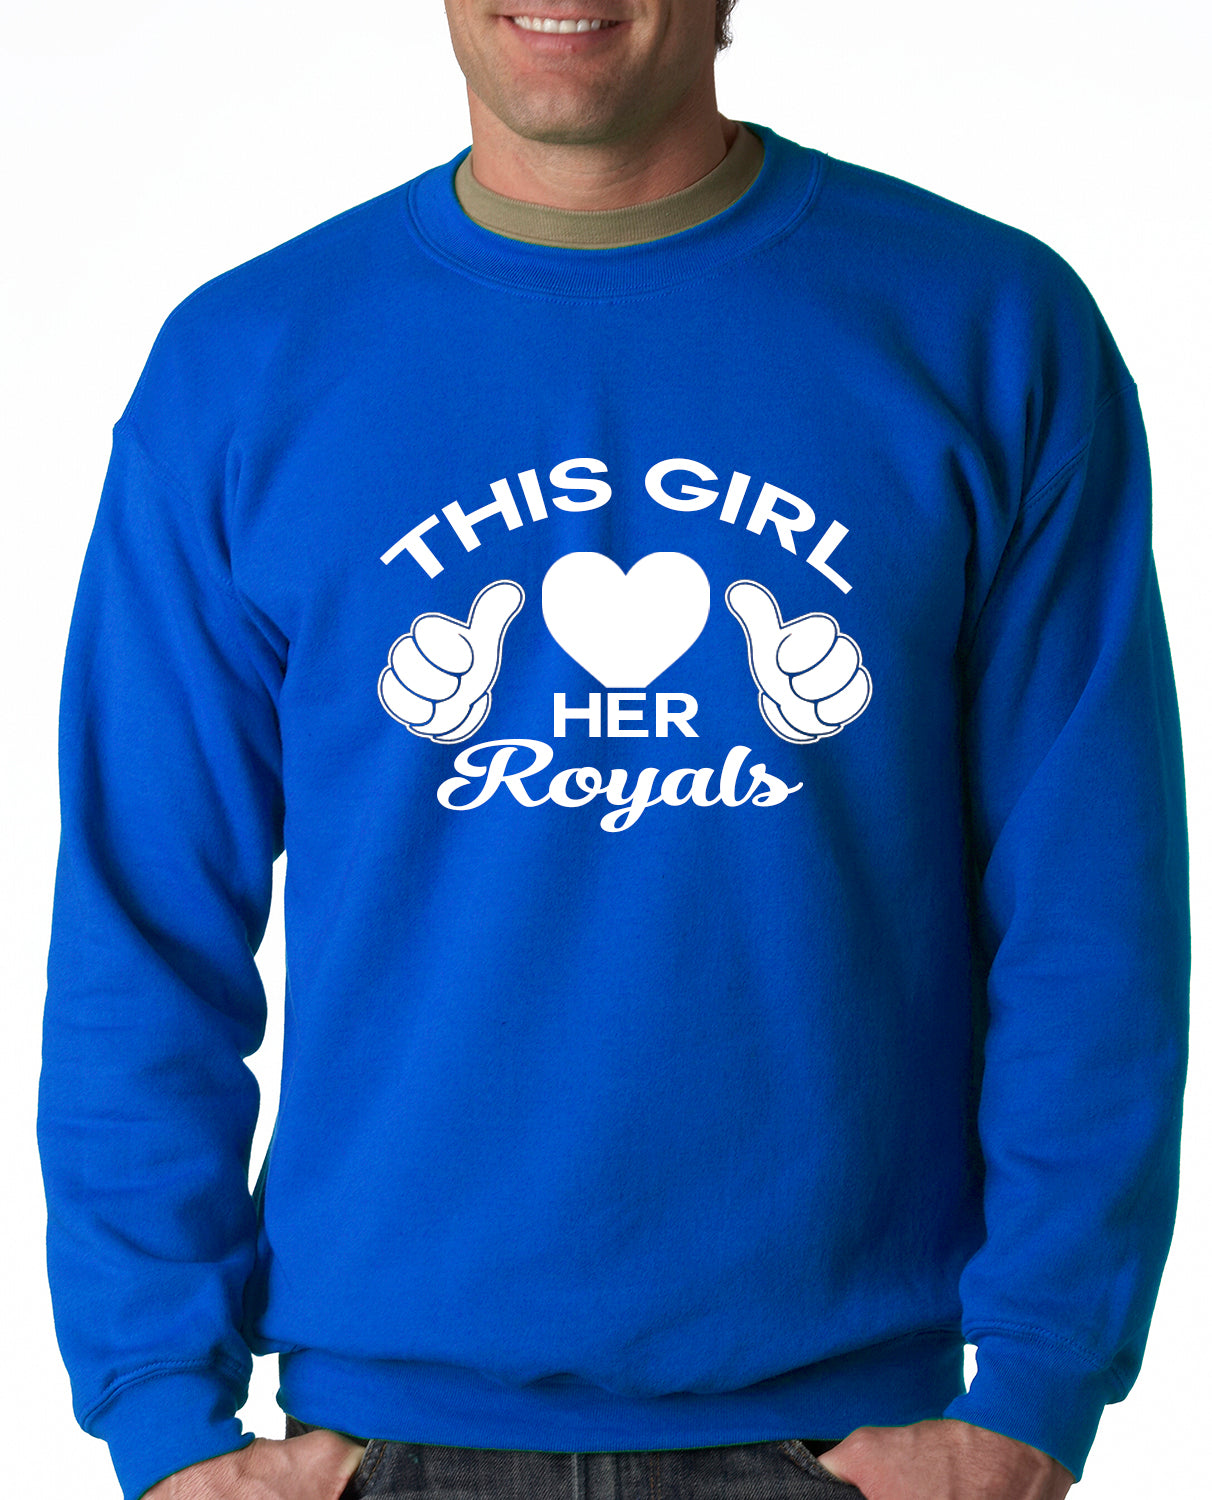 This Girl Loves Her Royals Crewneck Sweatshirt